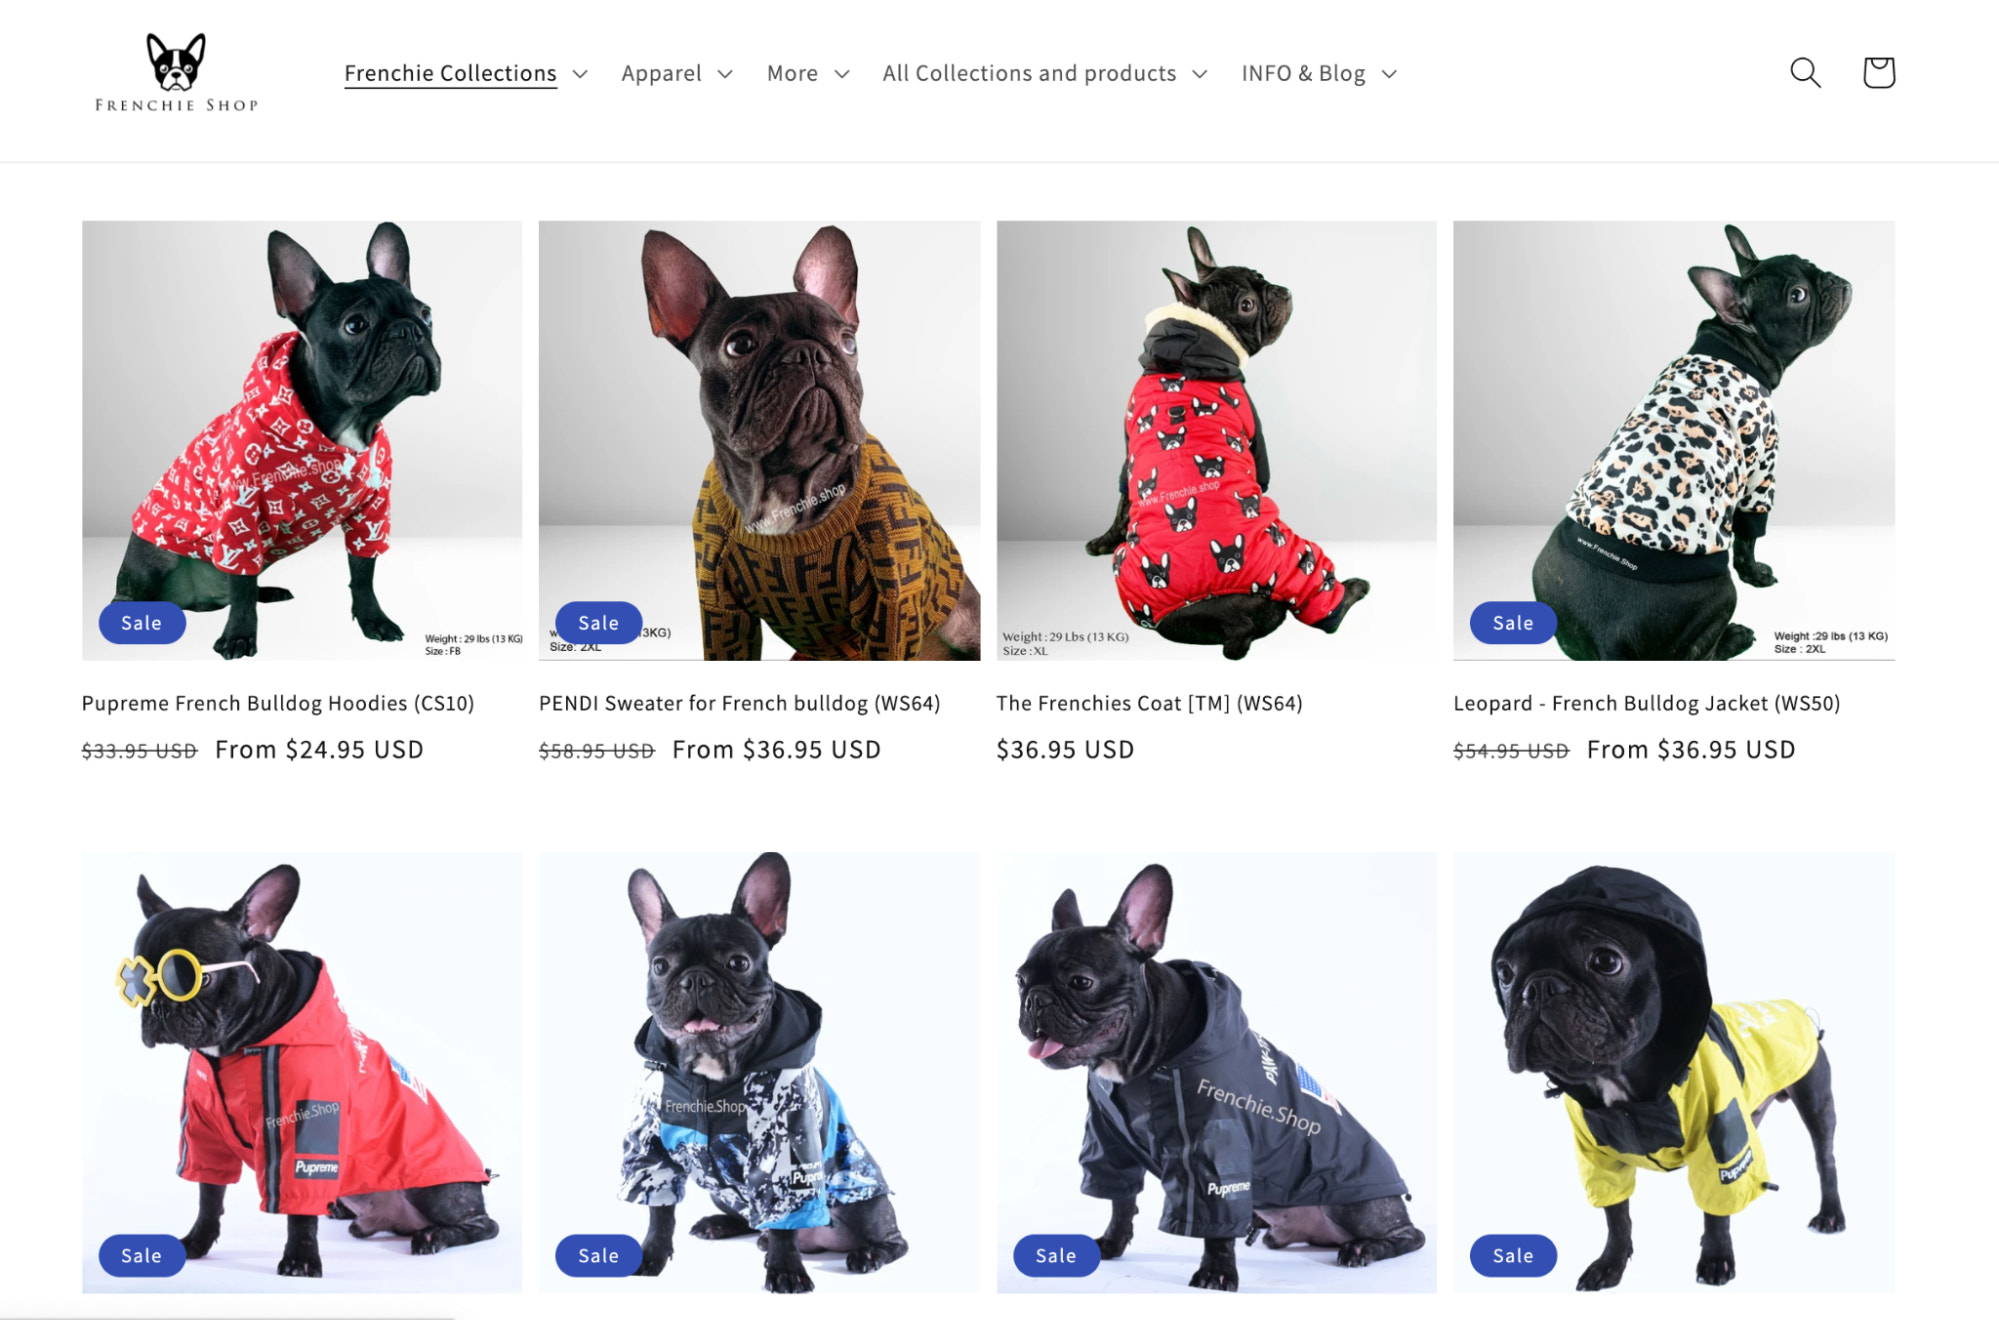 frenchie dog store speciality example